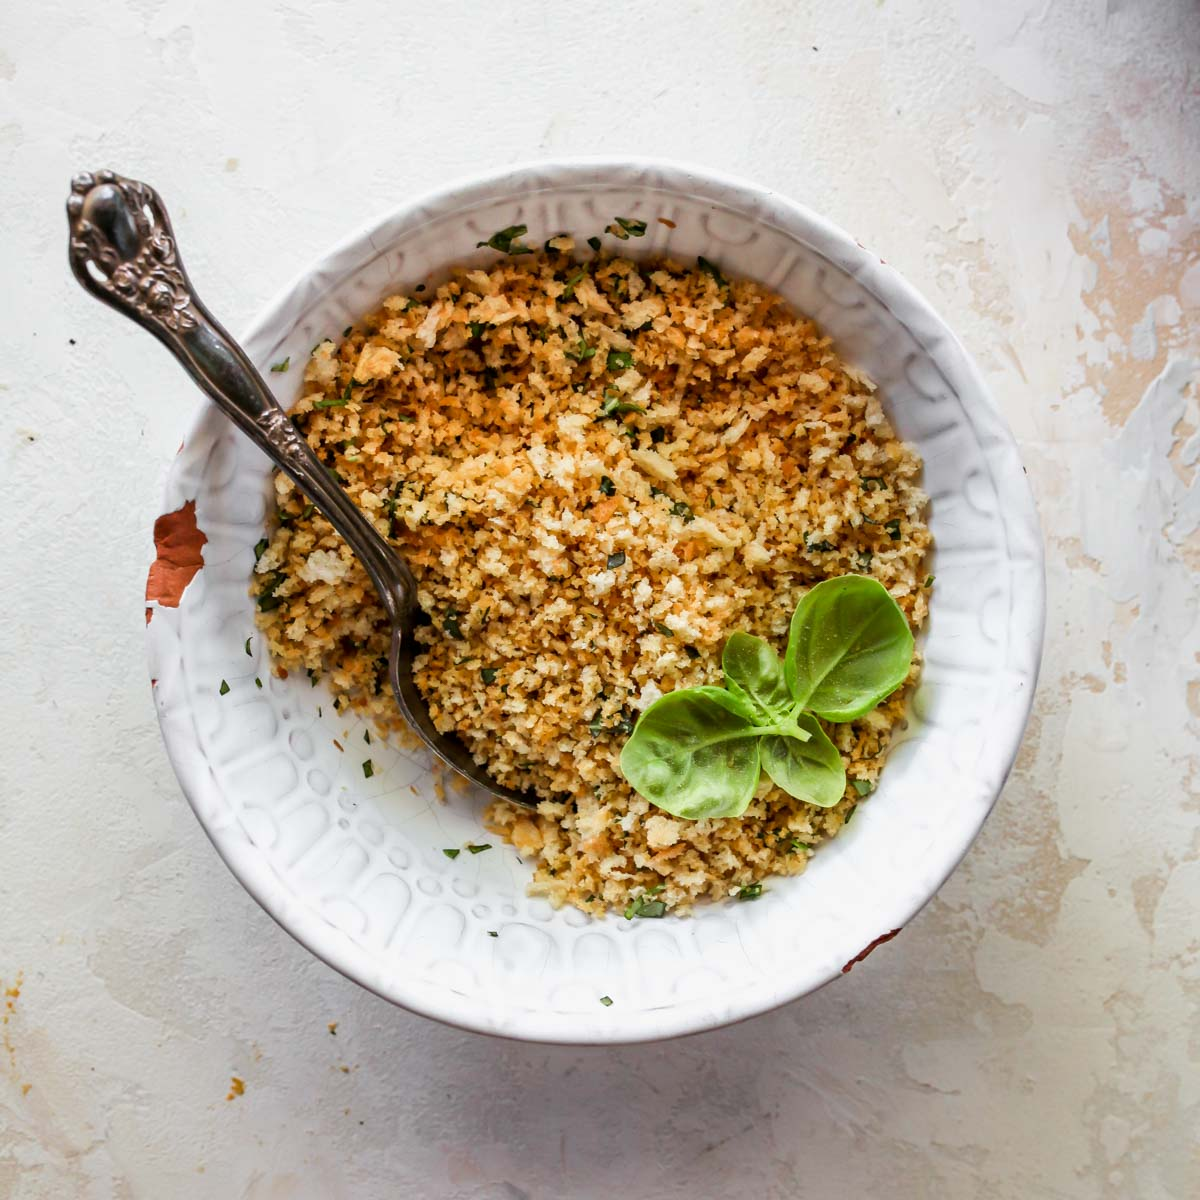 Toasted breadcrumbs and pine nuts in a bowl with fresh basil